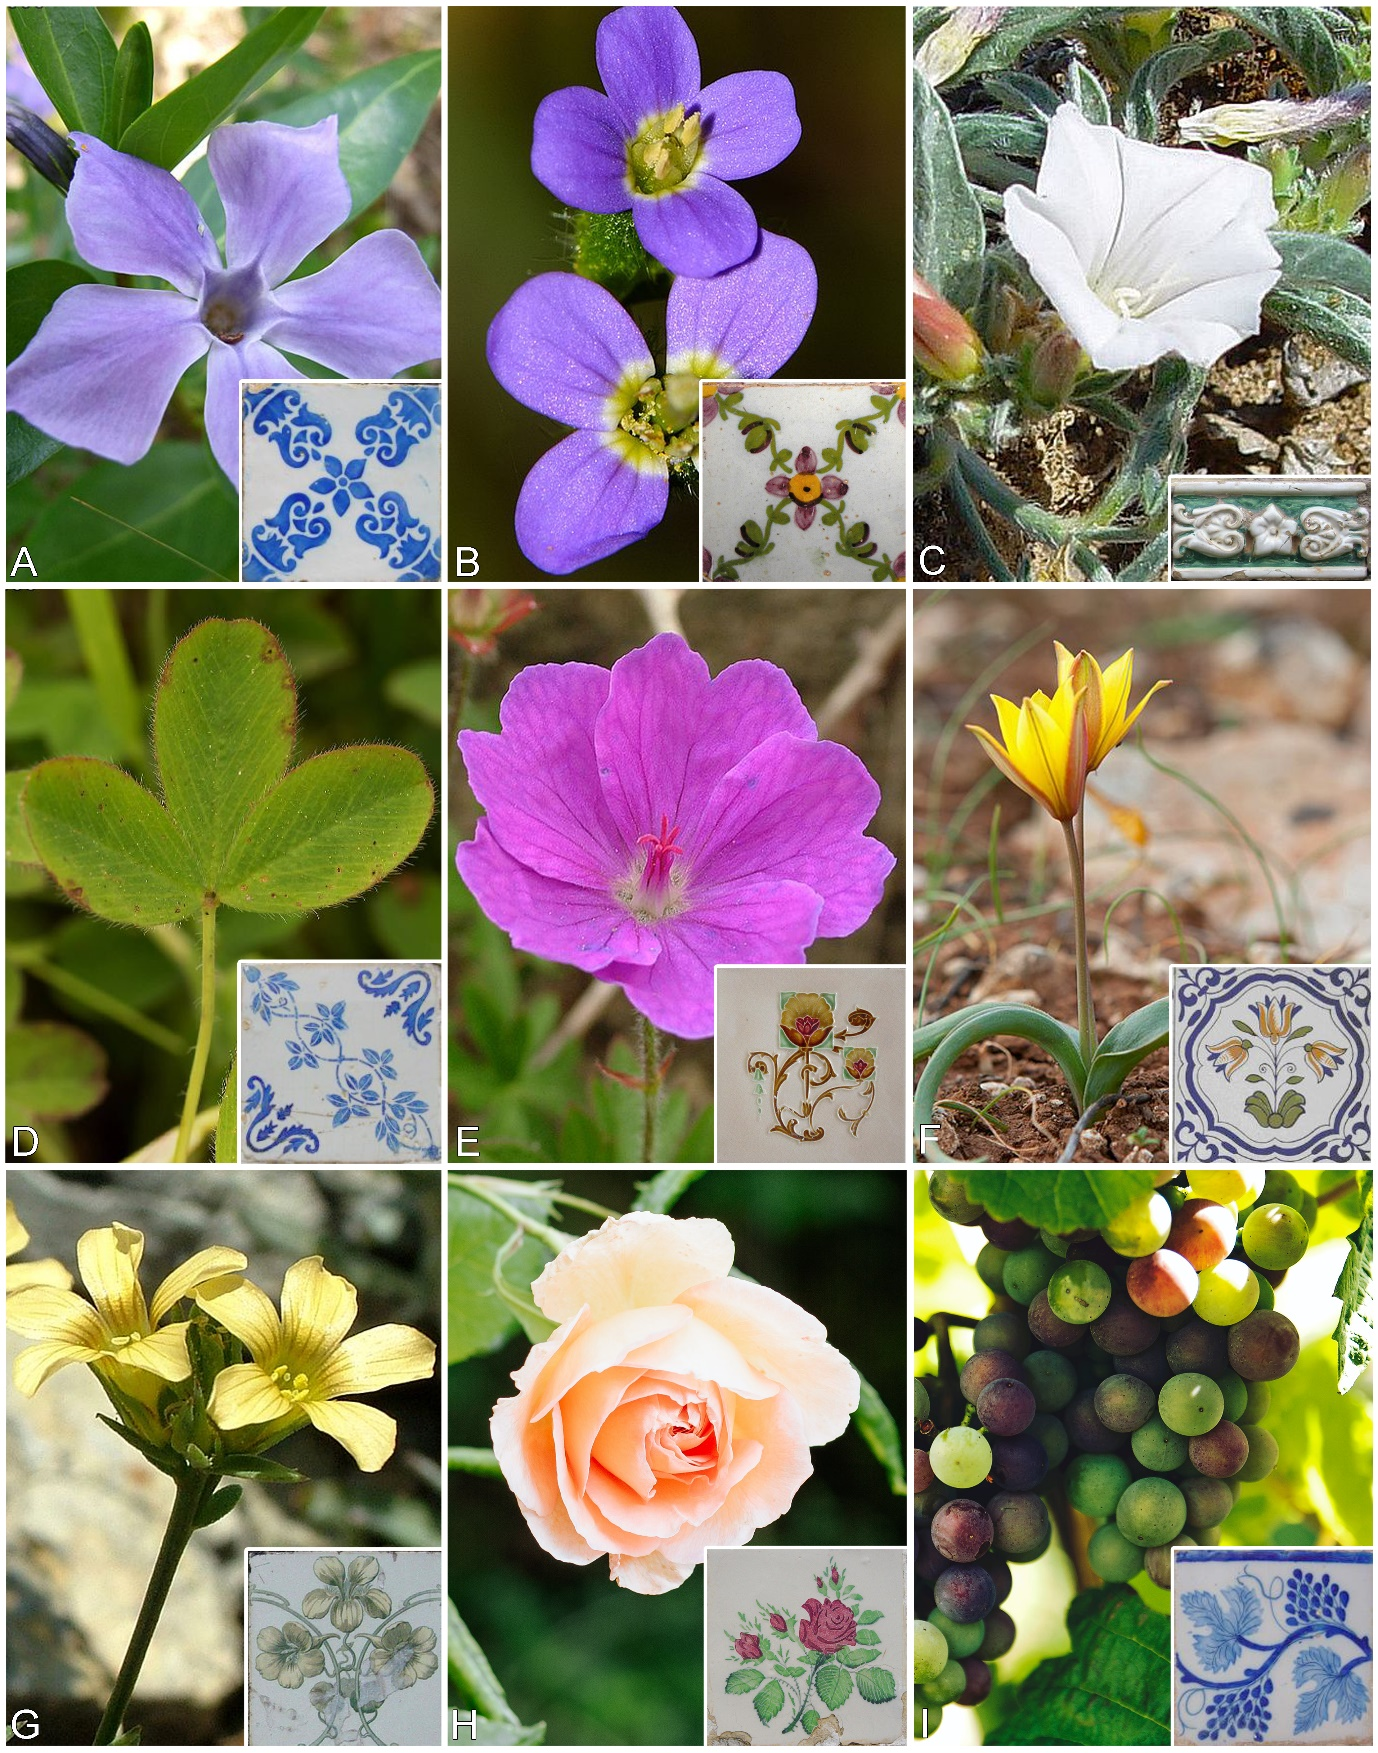 Nine images of plants, with an inset of a Portuguese tile depicting each plant respectively.